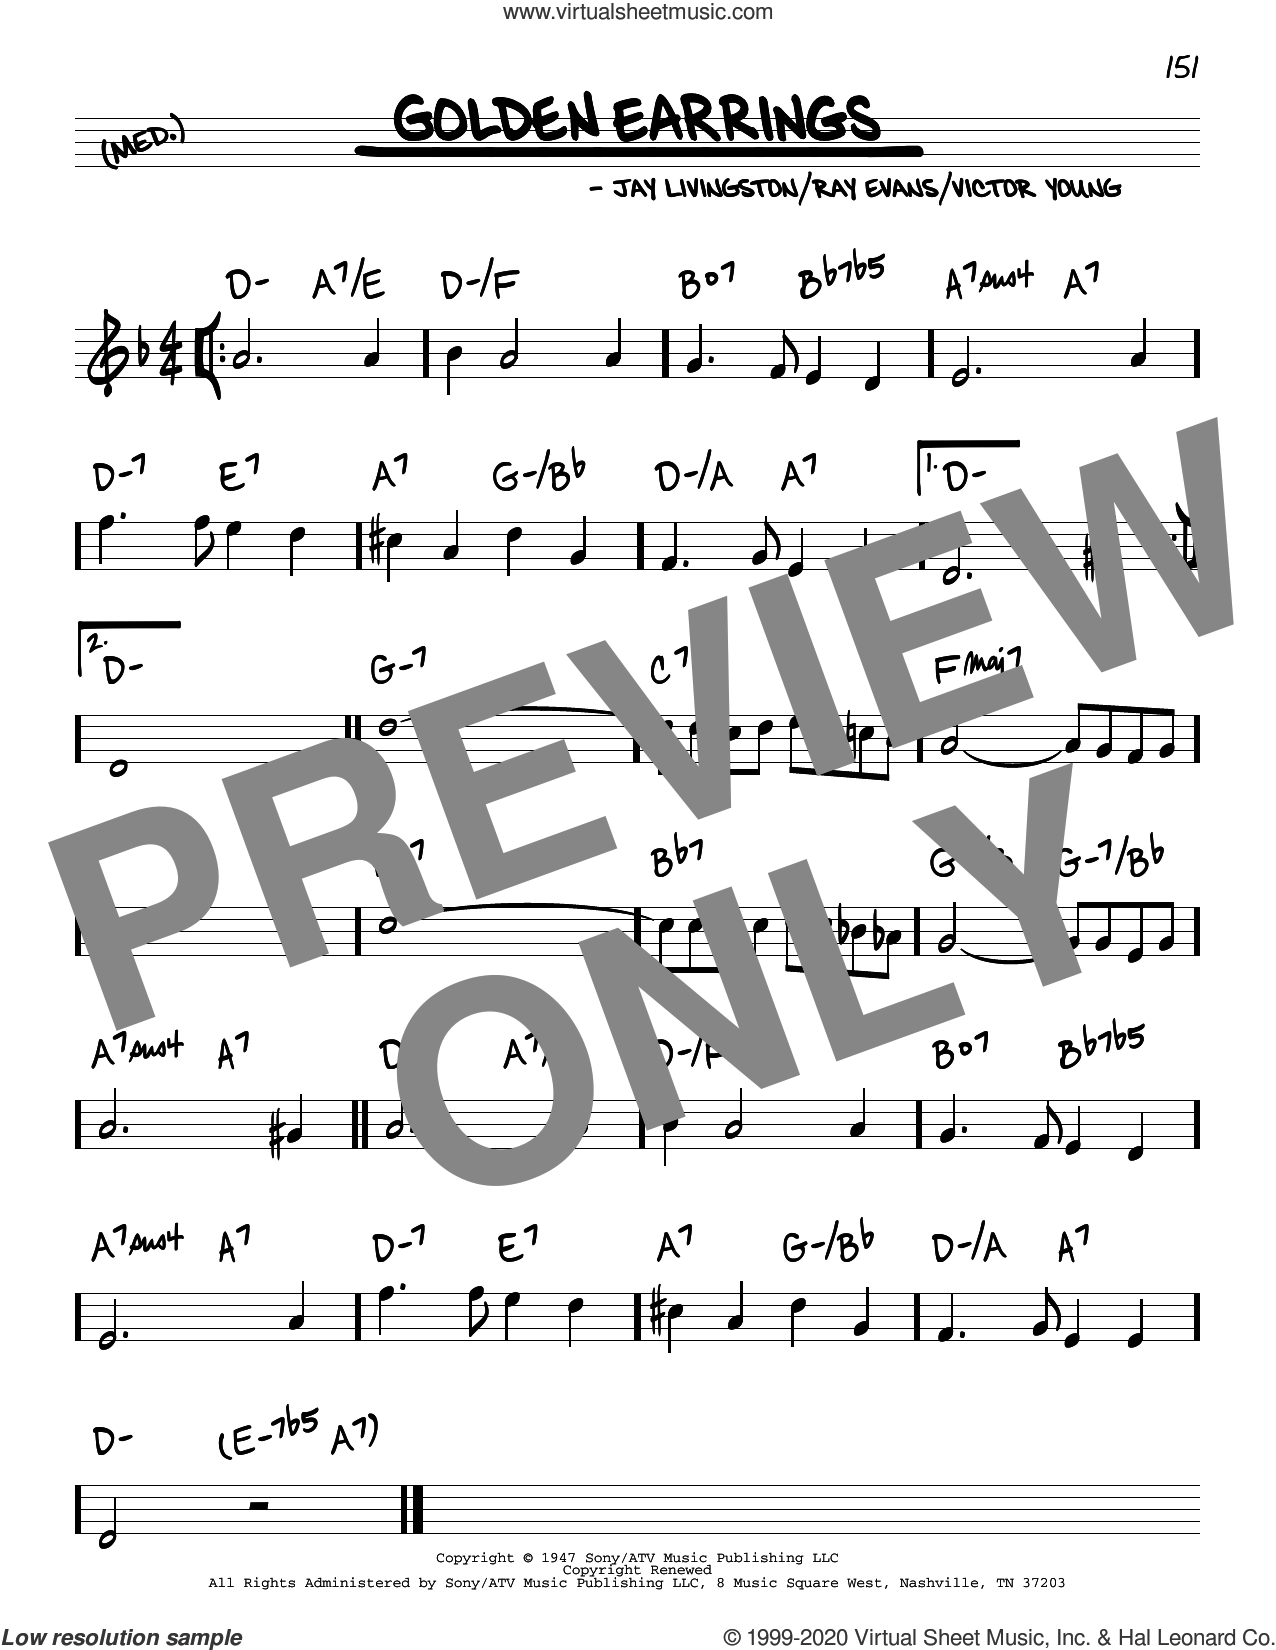 Golden Earrings sheet music for voice and other instruments (real book) by Peggy Lee, Jay Livingston, Ray Evans and Victor Young, intermediate skill level